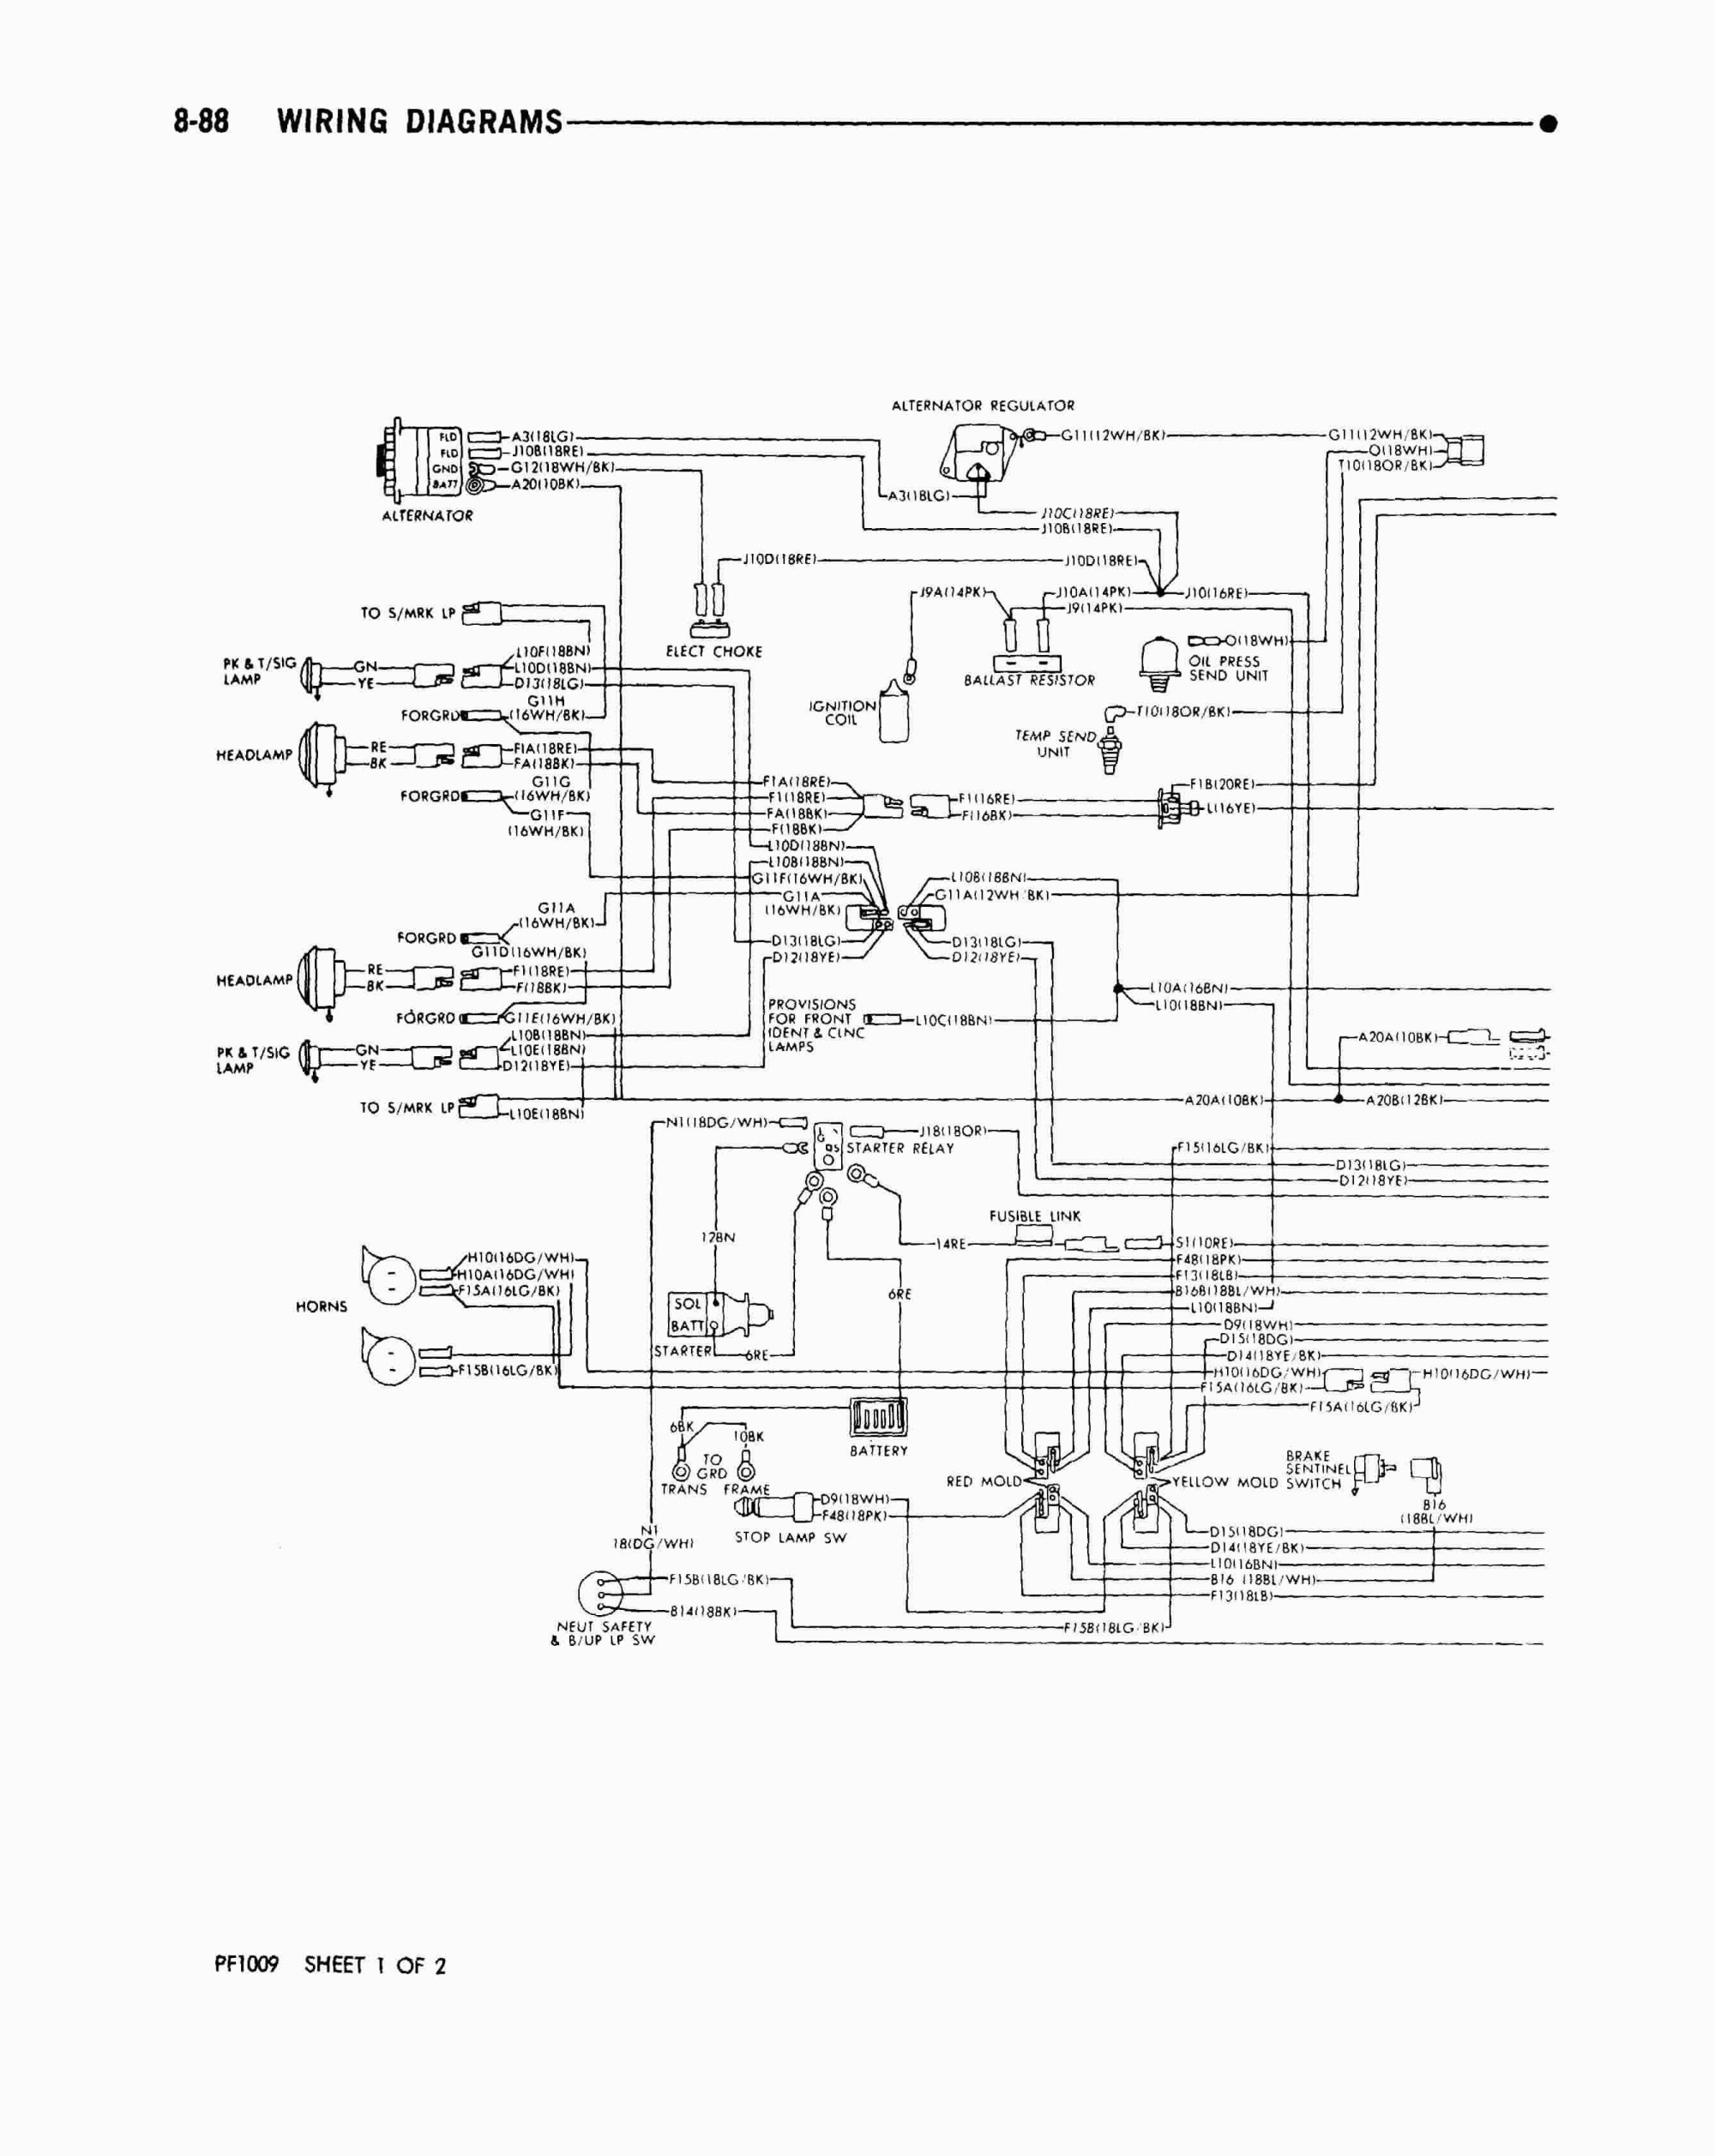 hight resolution of ford f53 wiring diagram data schematic diagram 1990 f53 wiring diagram